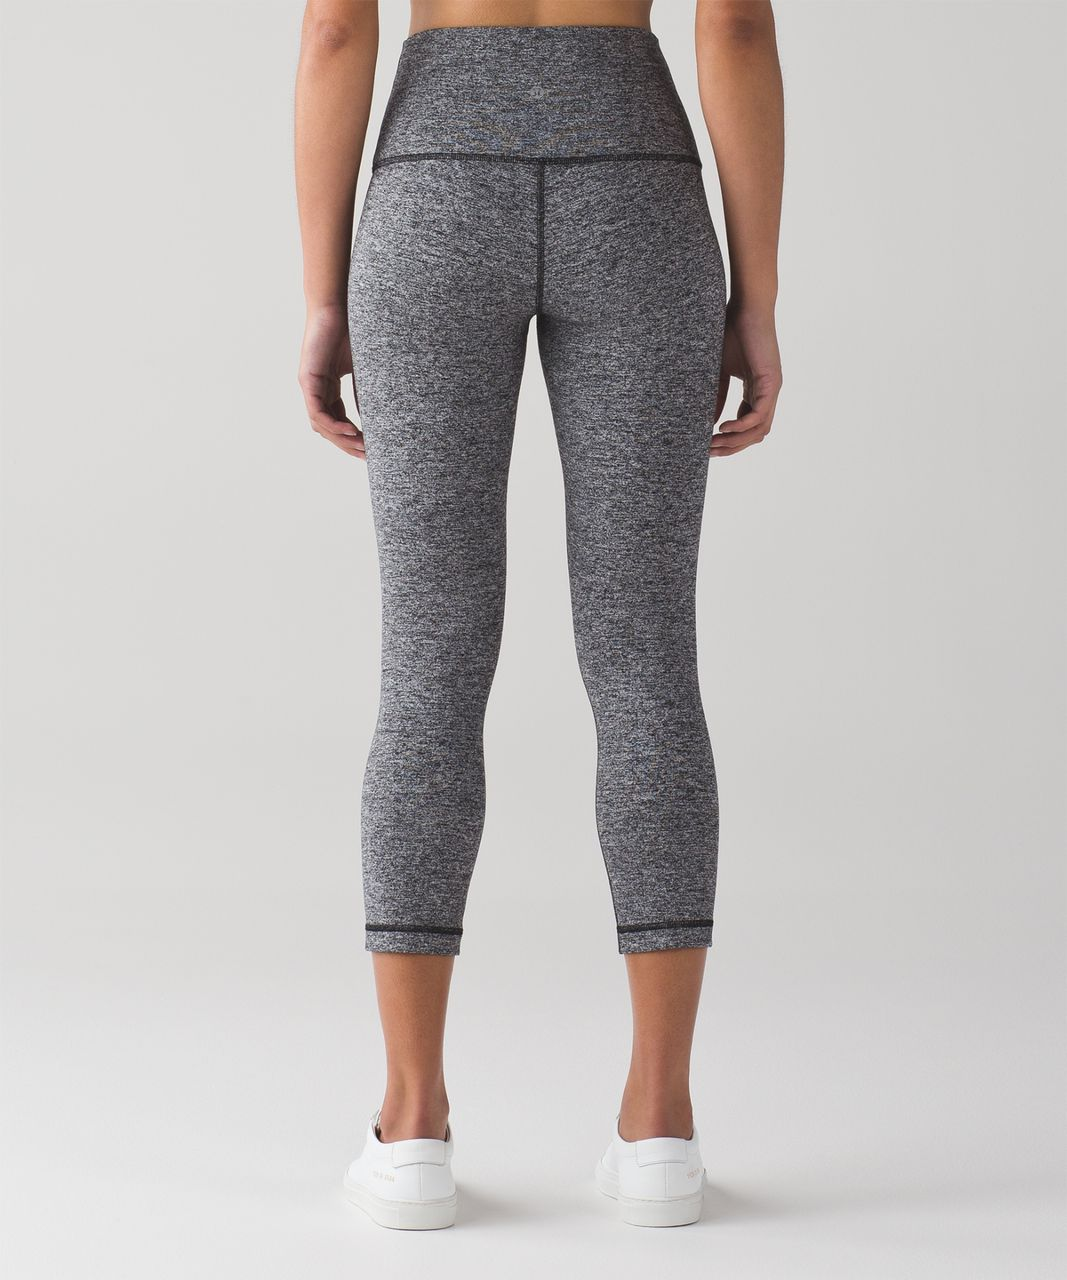 "Lululemon Wunder Under Crop (Hi-Rise) (21"") - Heathered Black (First Release)"